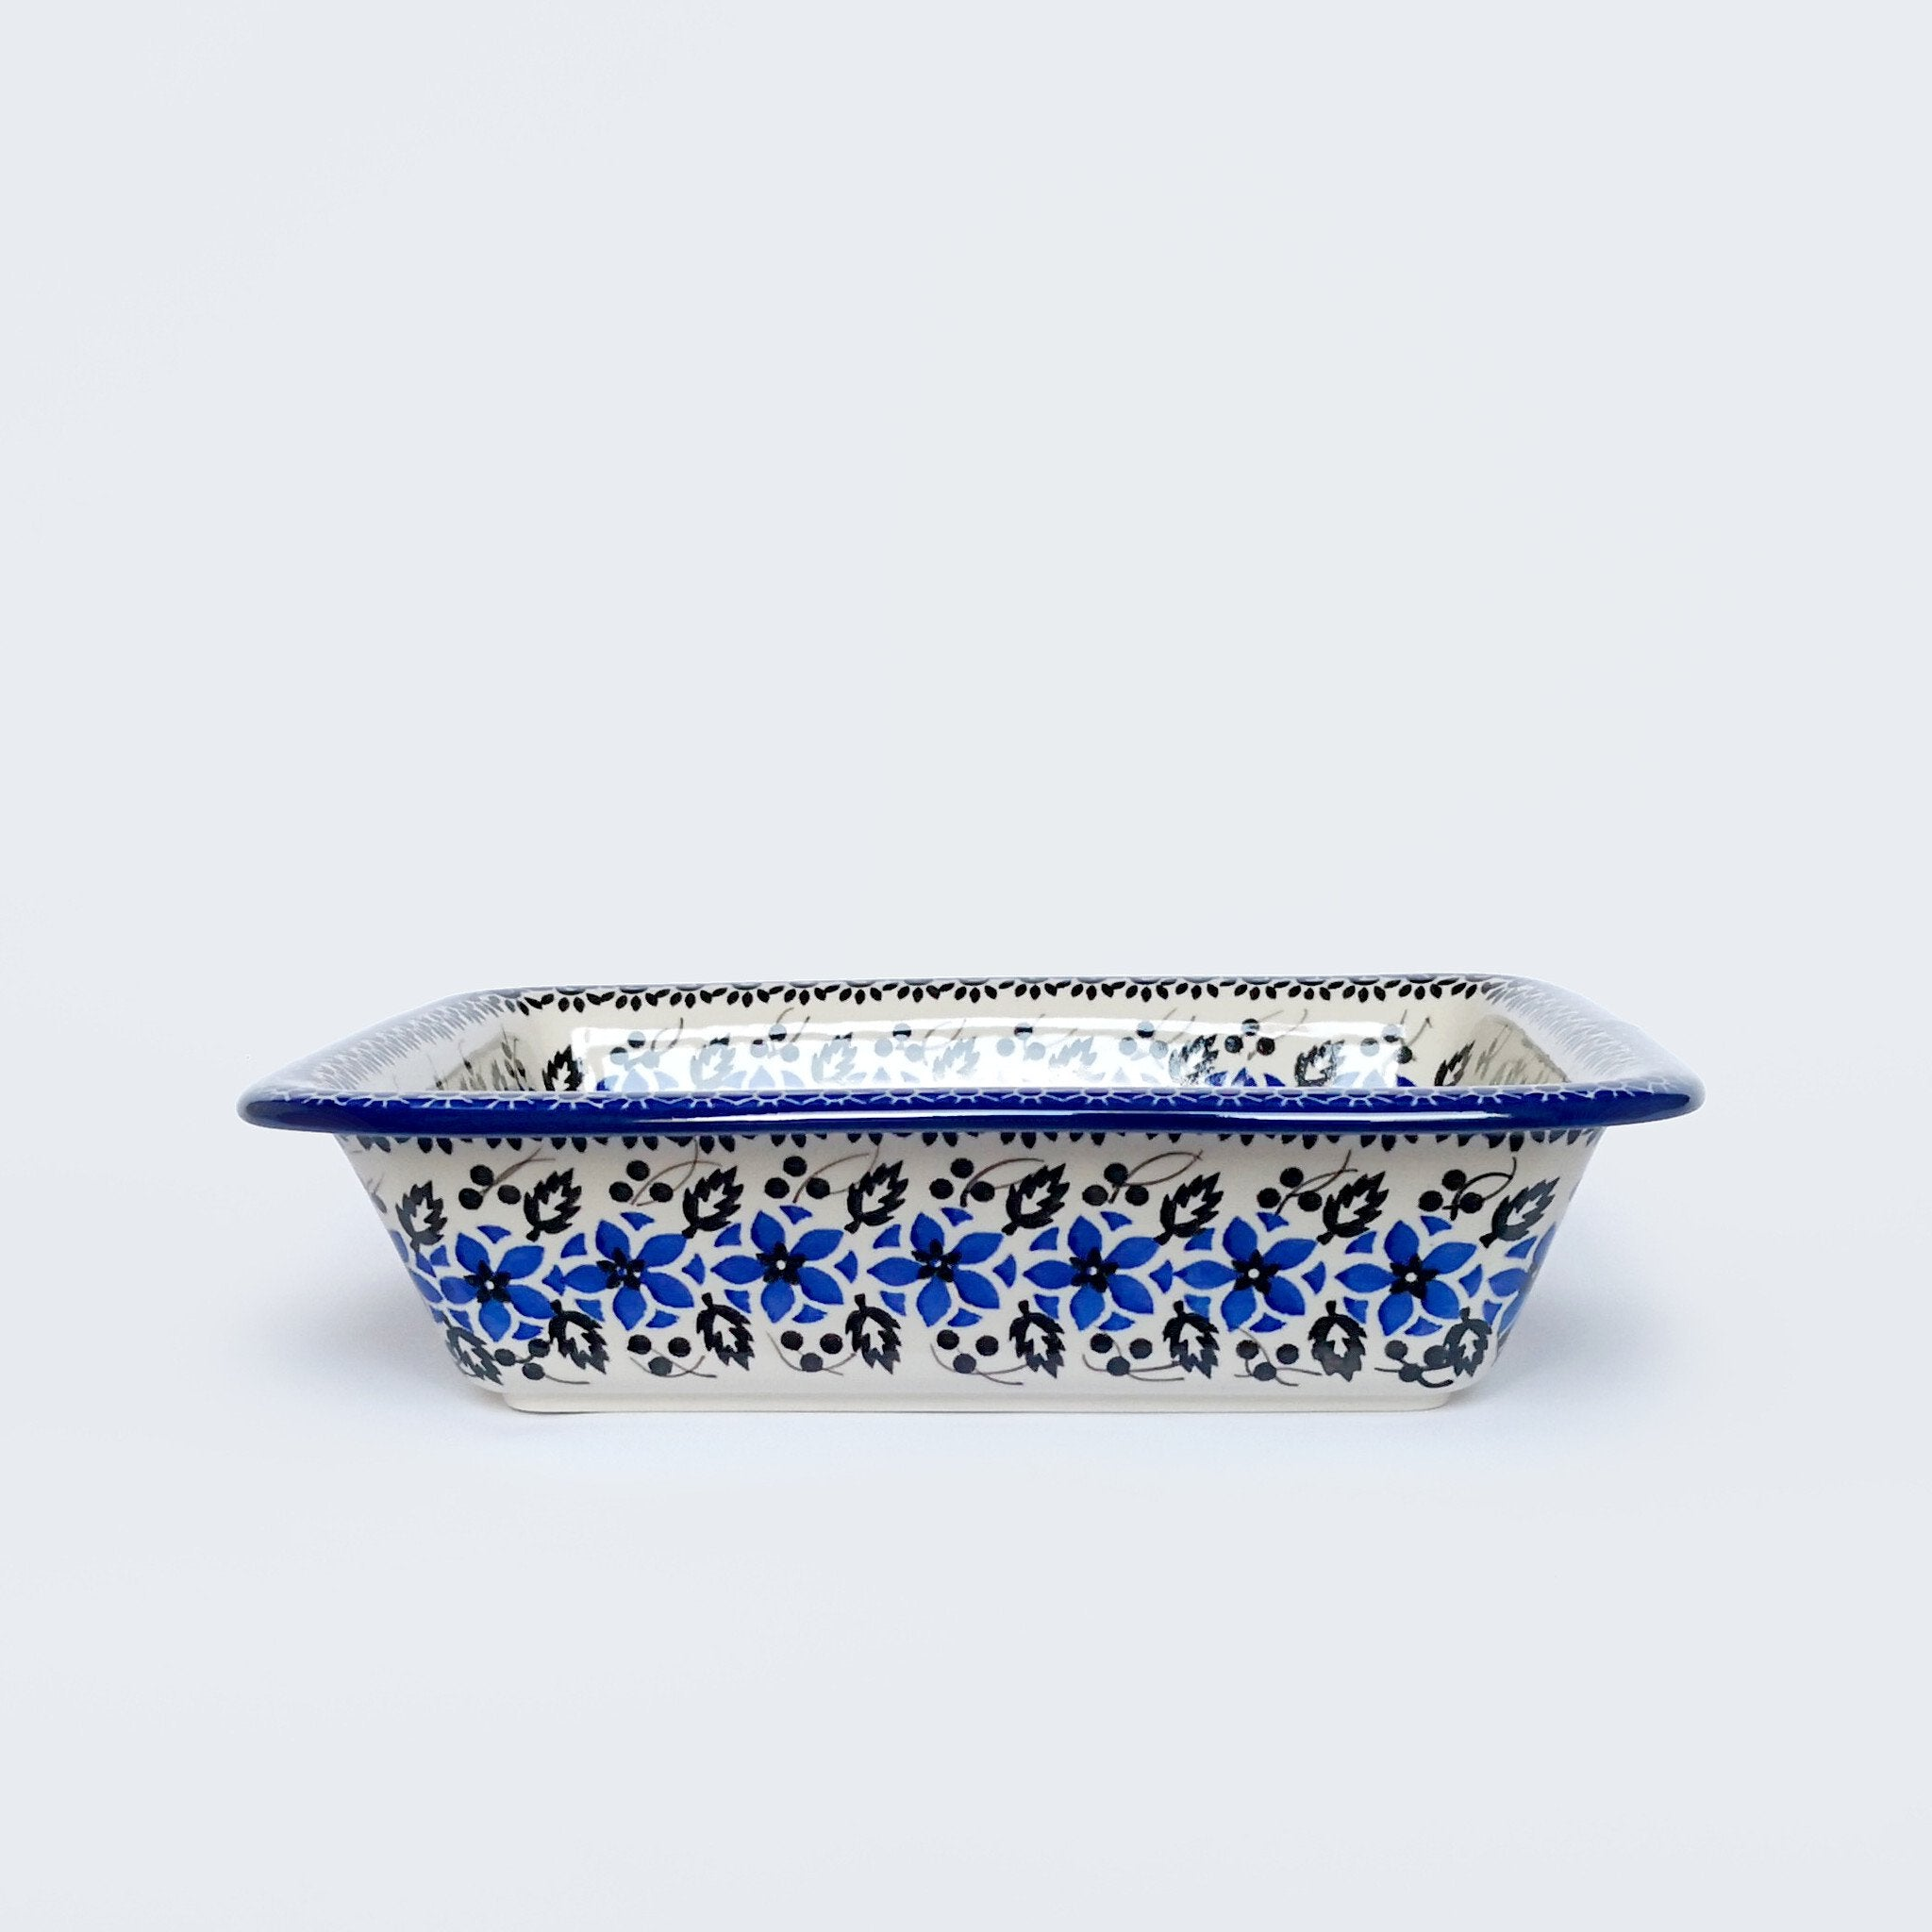 Small Pie Dish in Periwinkle